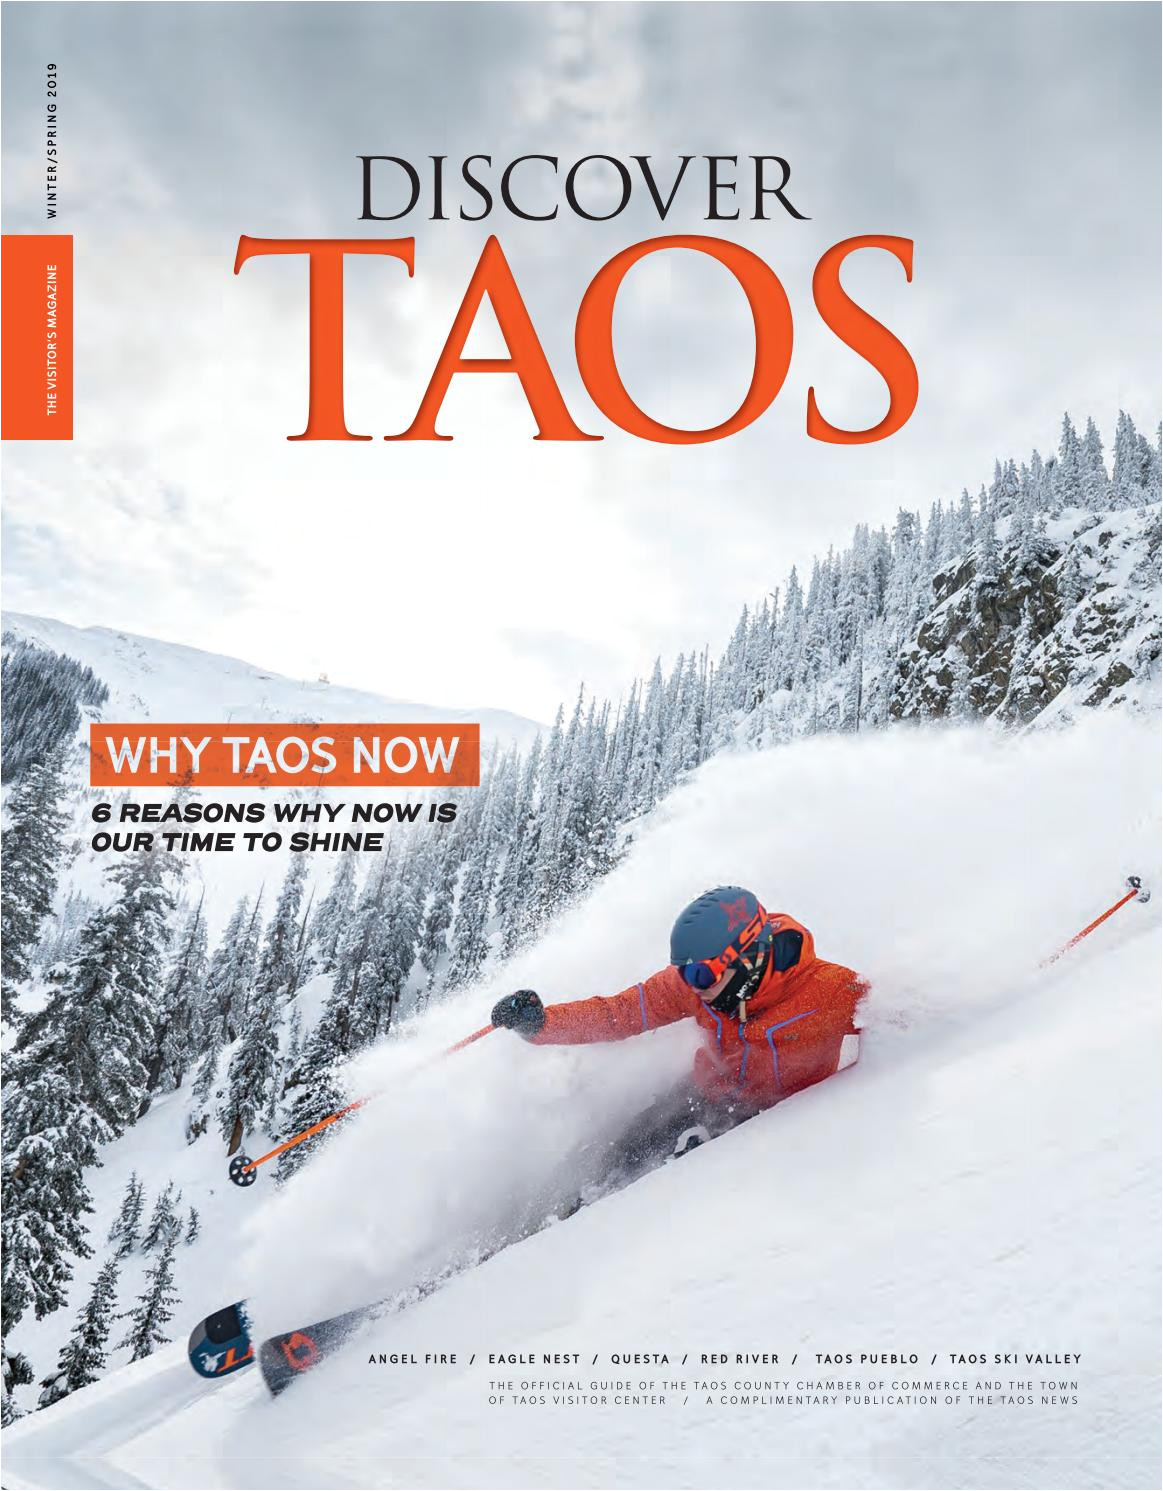 Red River New Mexico Calendar Of events 2019 Discover Taos Winter 2018 2019 by the Taos News issuu